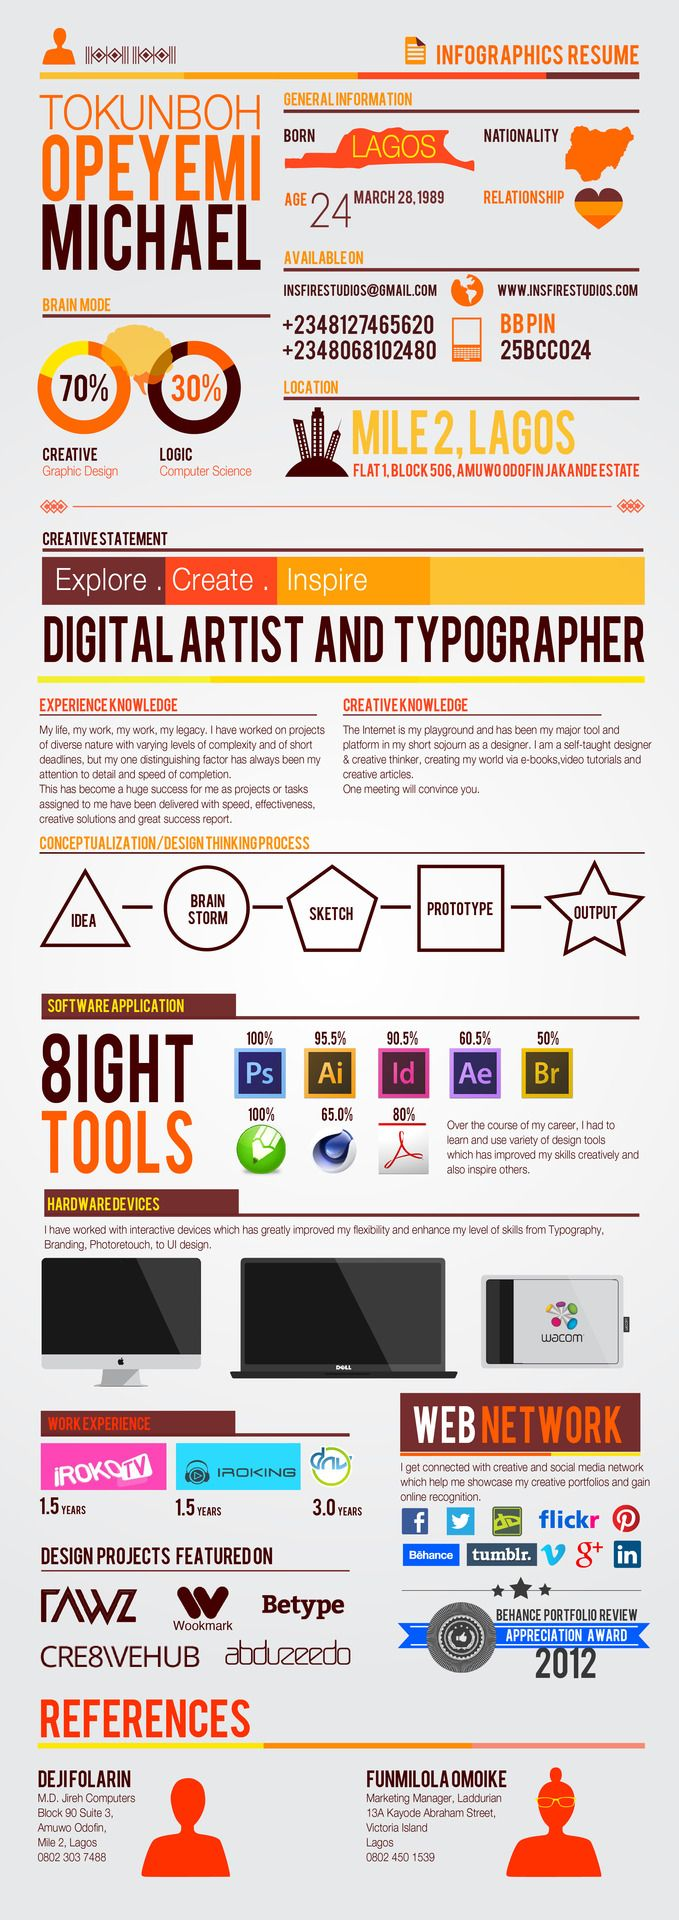 Opposenewapstandardsus  Remarkable  Ideas About Infographic Resume On Pinterest  My Portfolio  With Fascinating  Ideas About Infographic Resume On Pinterest  My Portfolio Resume And Resume Design With Delightful Resume Examples For Nurses Also Scp Resume In Addition Lpn Resumes And Math Tutor Resume As Well As House Cleaning Resume Additionally Free Resume Templates Microsoft From Pinterestcom With Opposenewapstandardsus  Fascinating  Ideas About Infographic Resume On Pinterest  My Portfolio  With Delightful  Ideas About Infographic Resume On Pinterest  My Portfolio Resume And Resume Design And Remarkable Resume Examples For Nurses Also Scp Resume In Addition Lpn Resumes From Pinterestcom